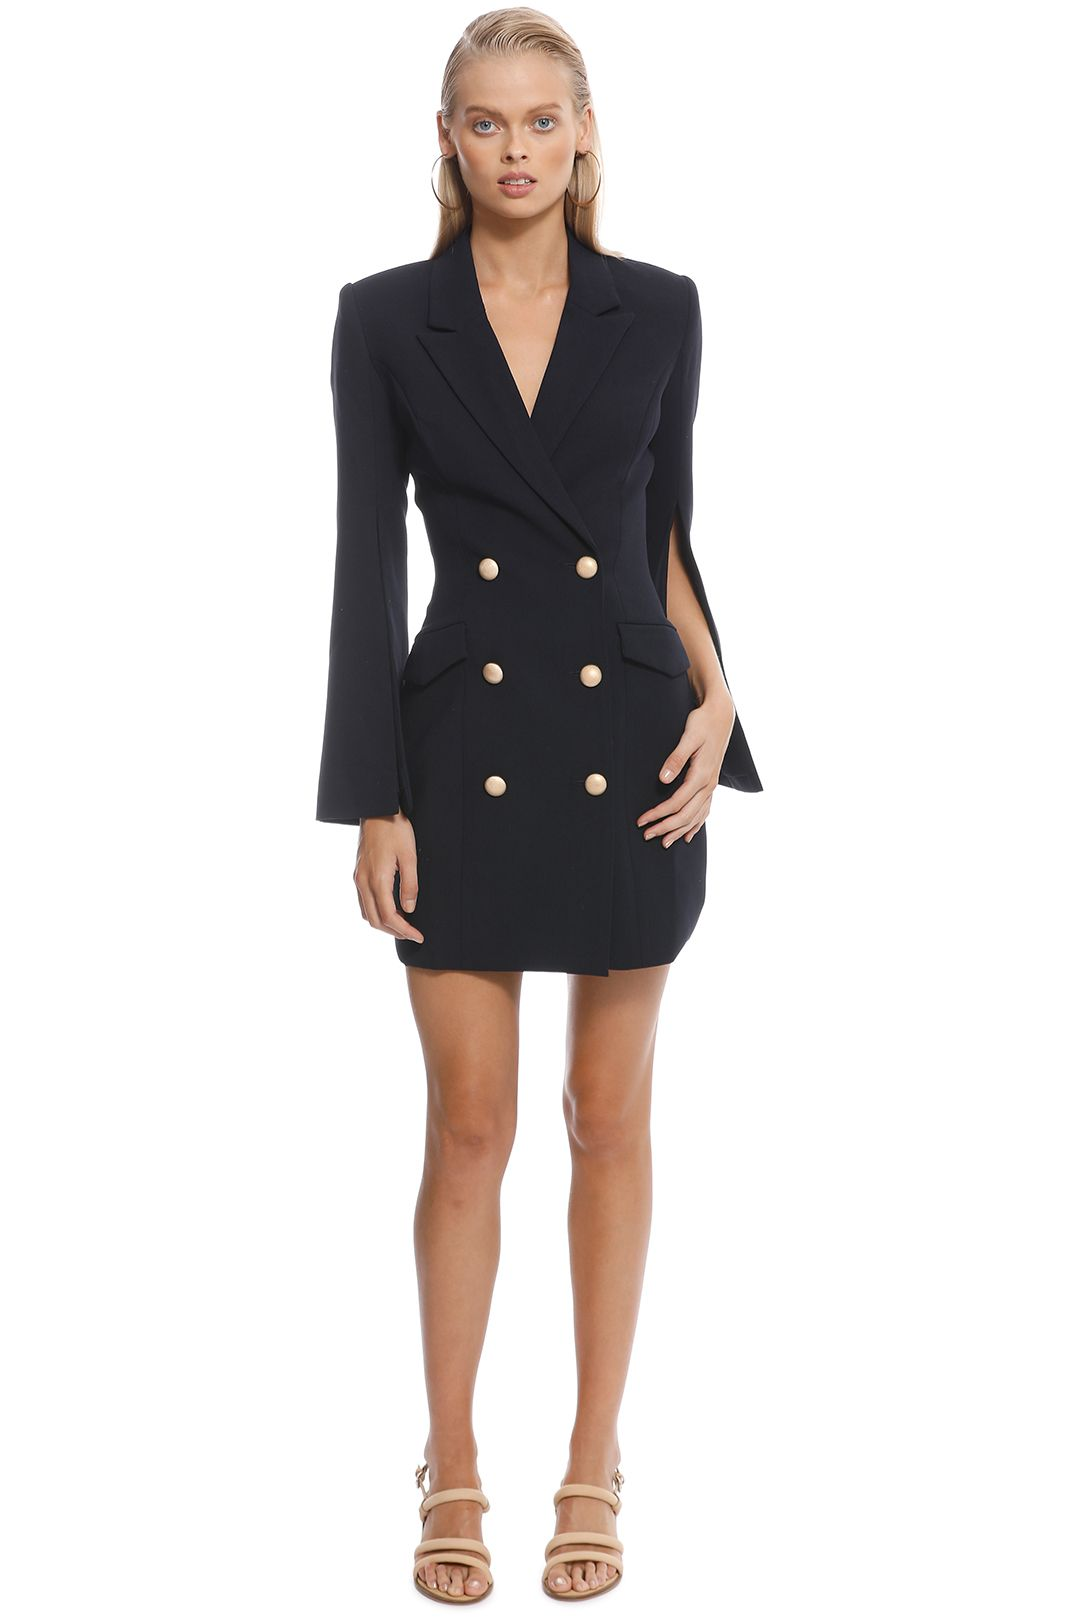 Misha Collection - Ariel Blazer Dress - Navy - Front